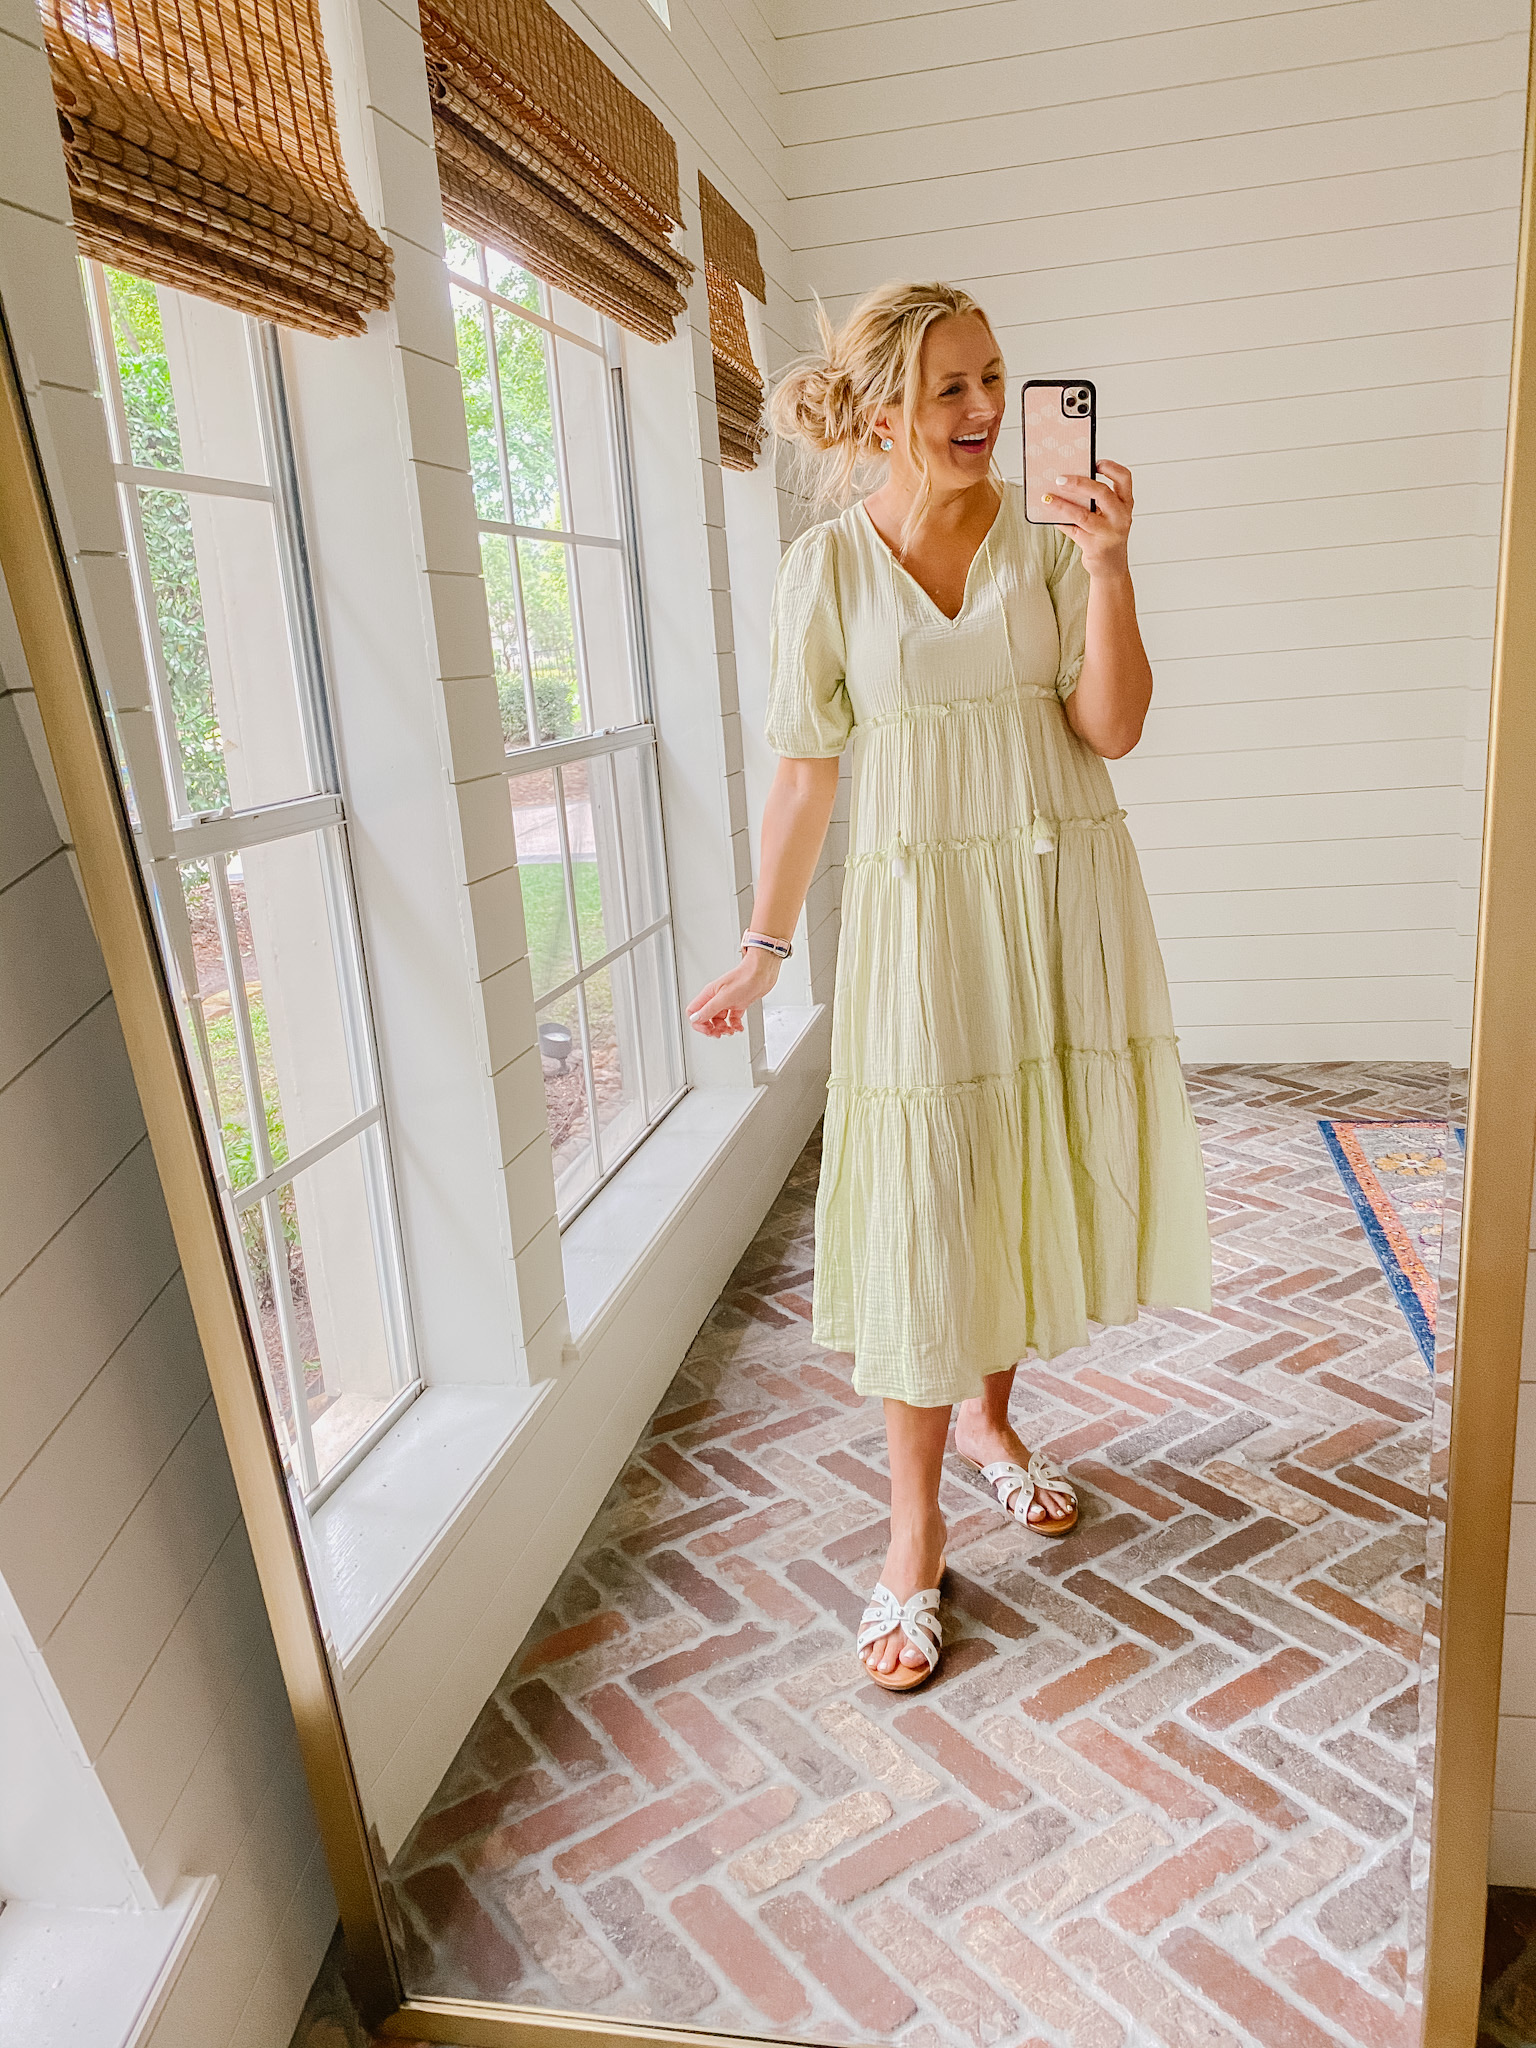 Best Sellers by popular Houston fashion blog, The House of Fancy: image of a woman wearing a yellow tiered maxi dress with white strap sandals.